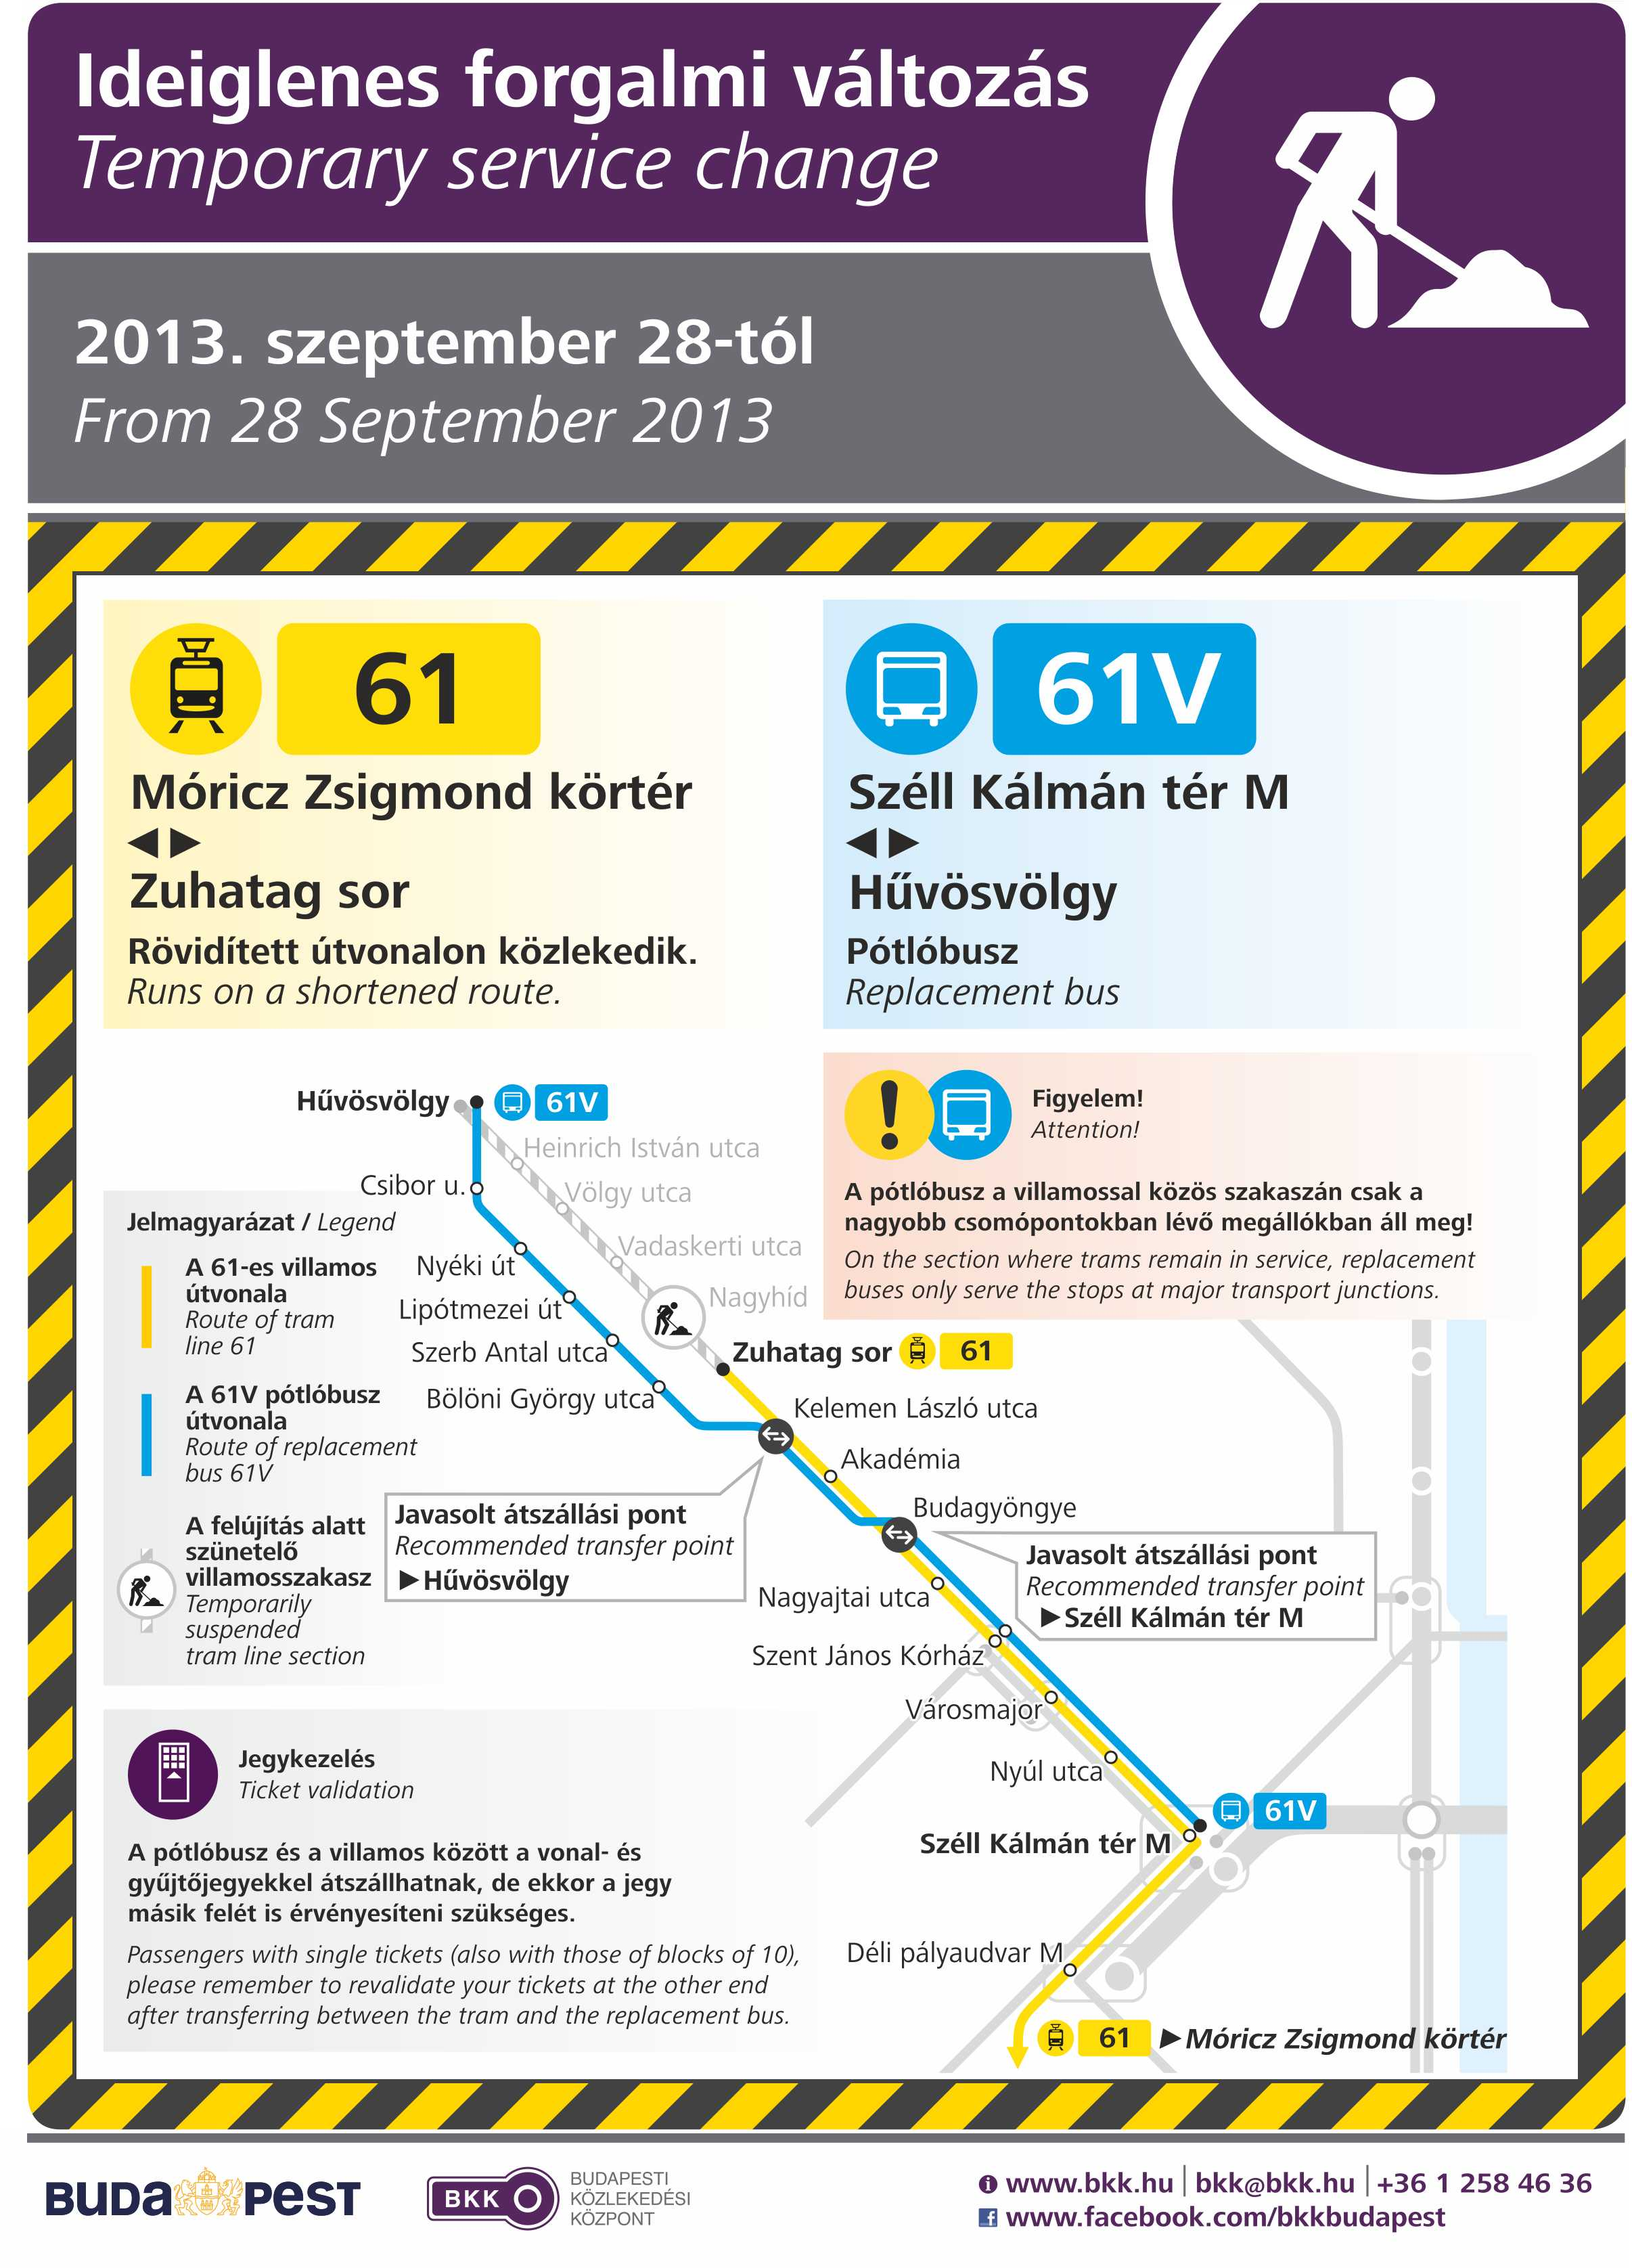 Due To Refurbishment Works Tram Line 61 Runs On A Shortened Route